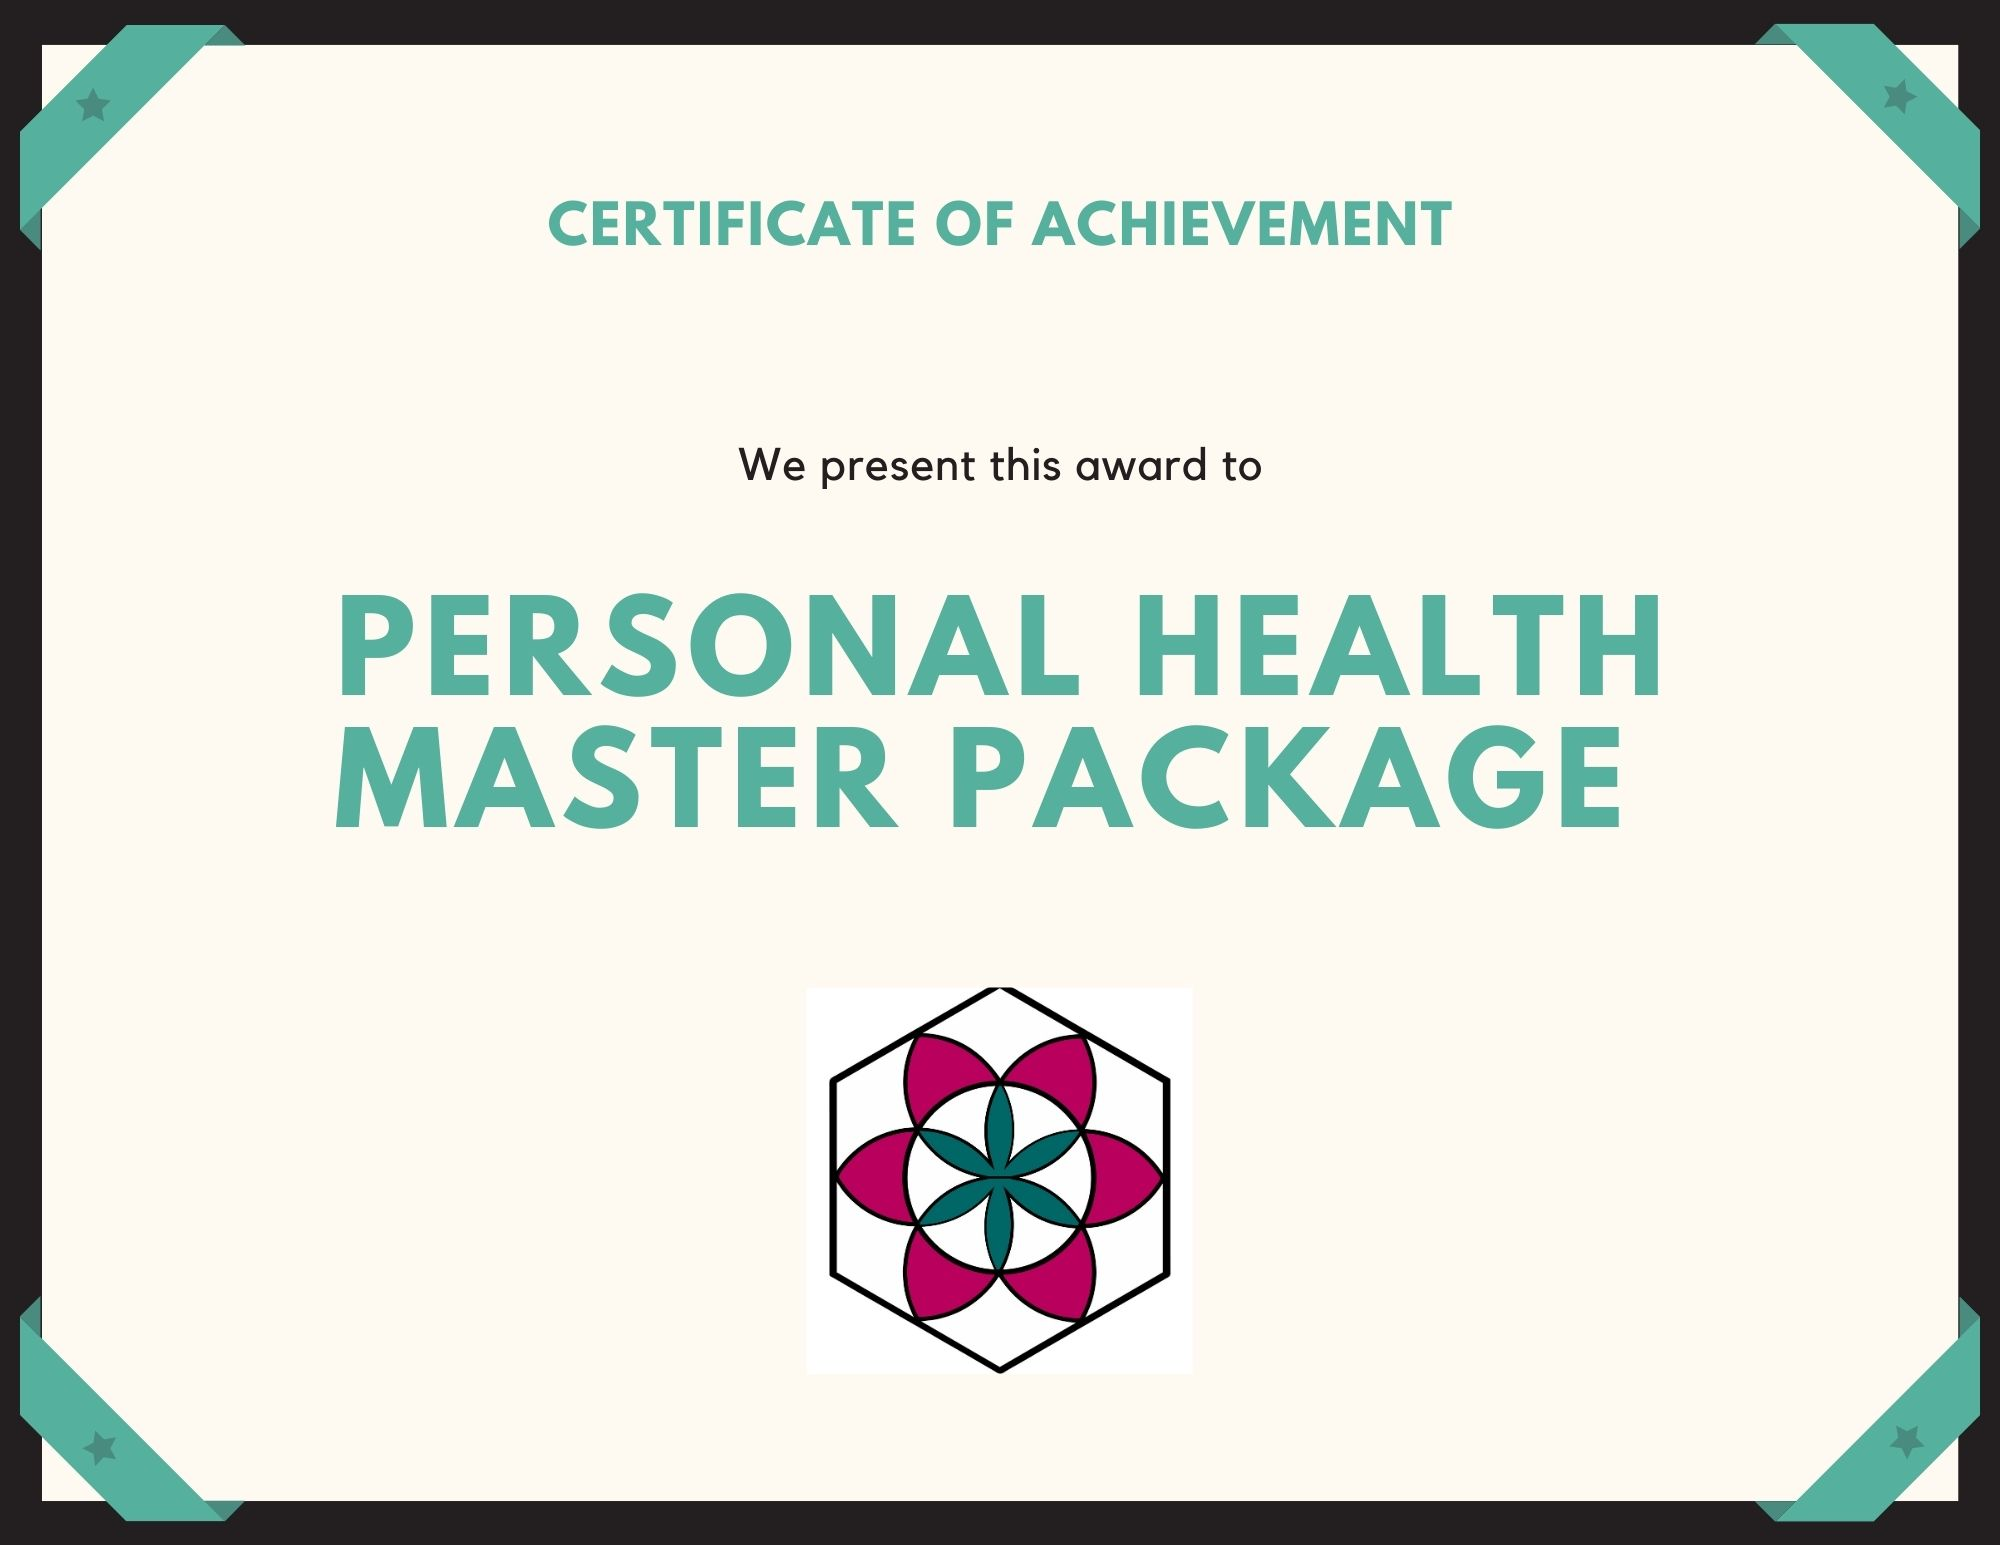 Healthy Person Package-3